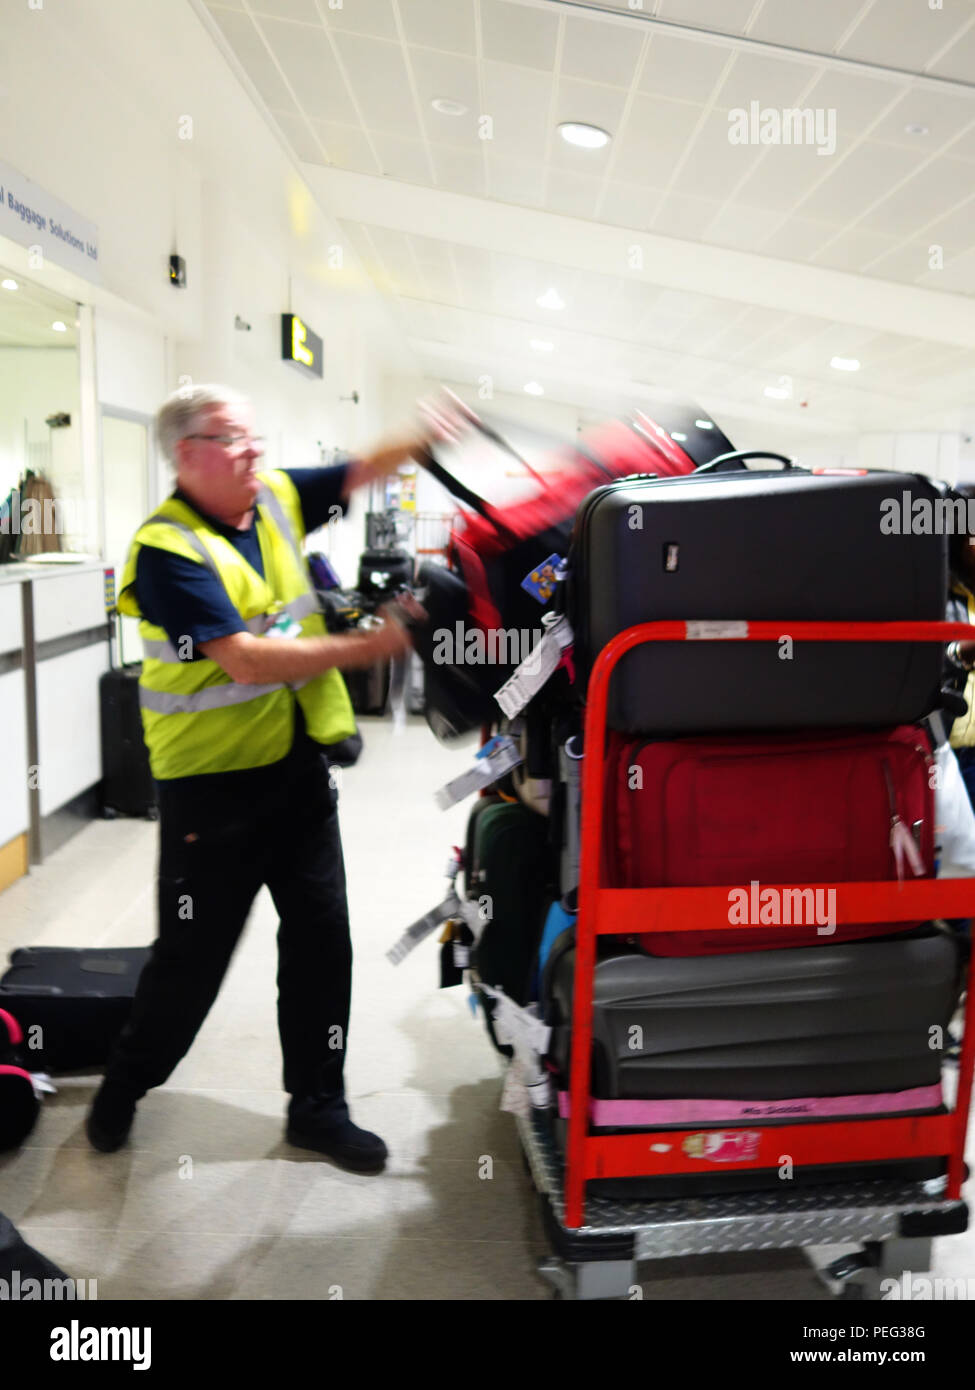 Baggage handler hand loading lost baggage using the facilities at the arrivals Manchester International Airportat Manchester International Airport - Stock Image